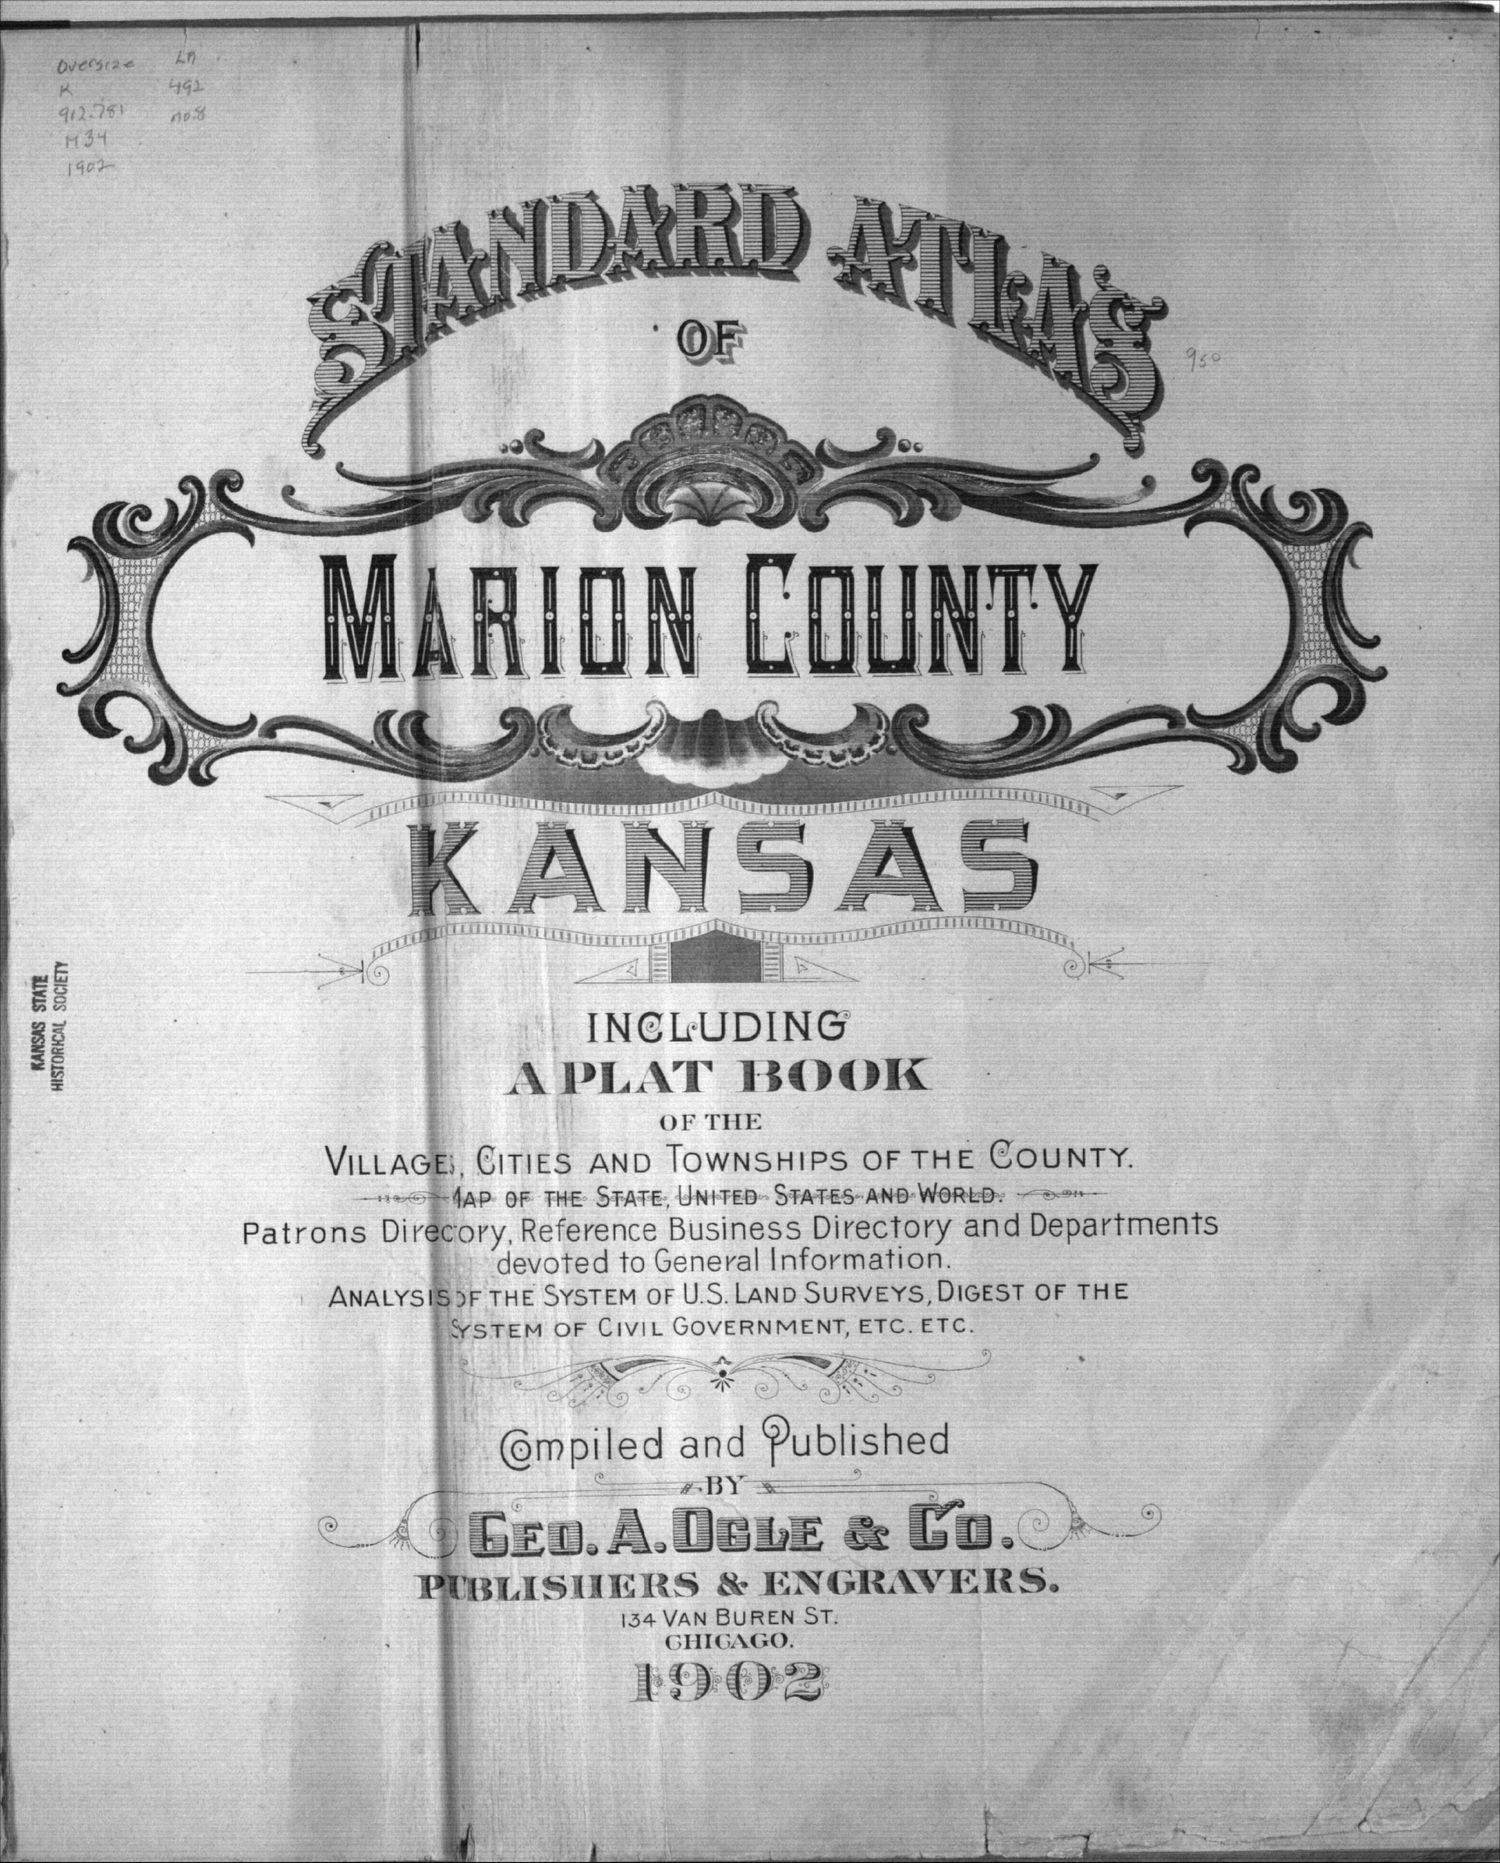 Standard atlas of Marion County, Kansas - Title Page